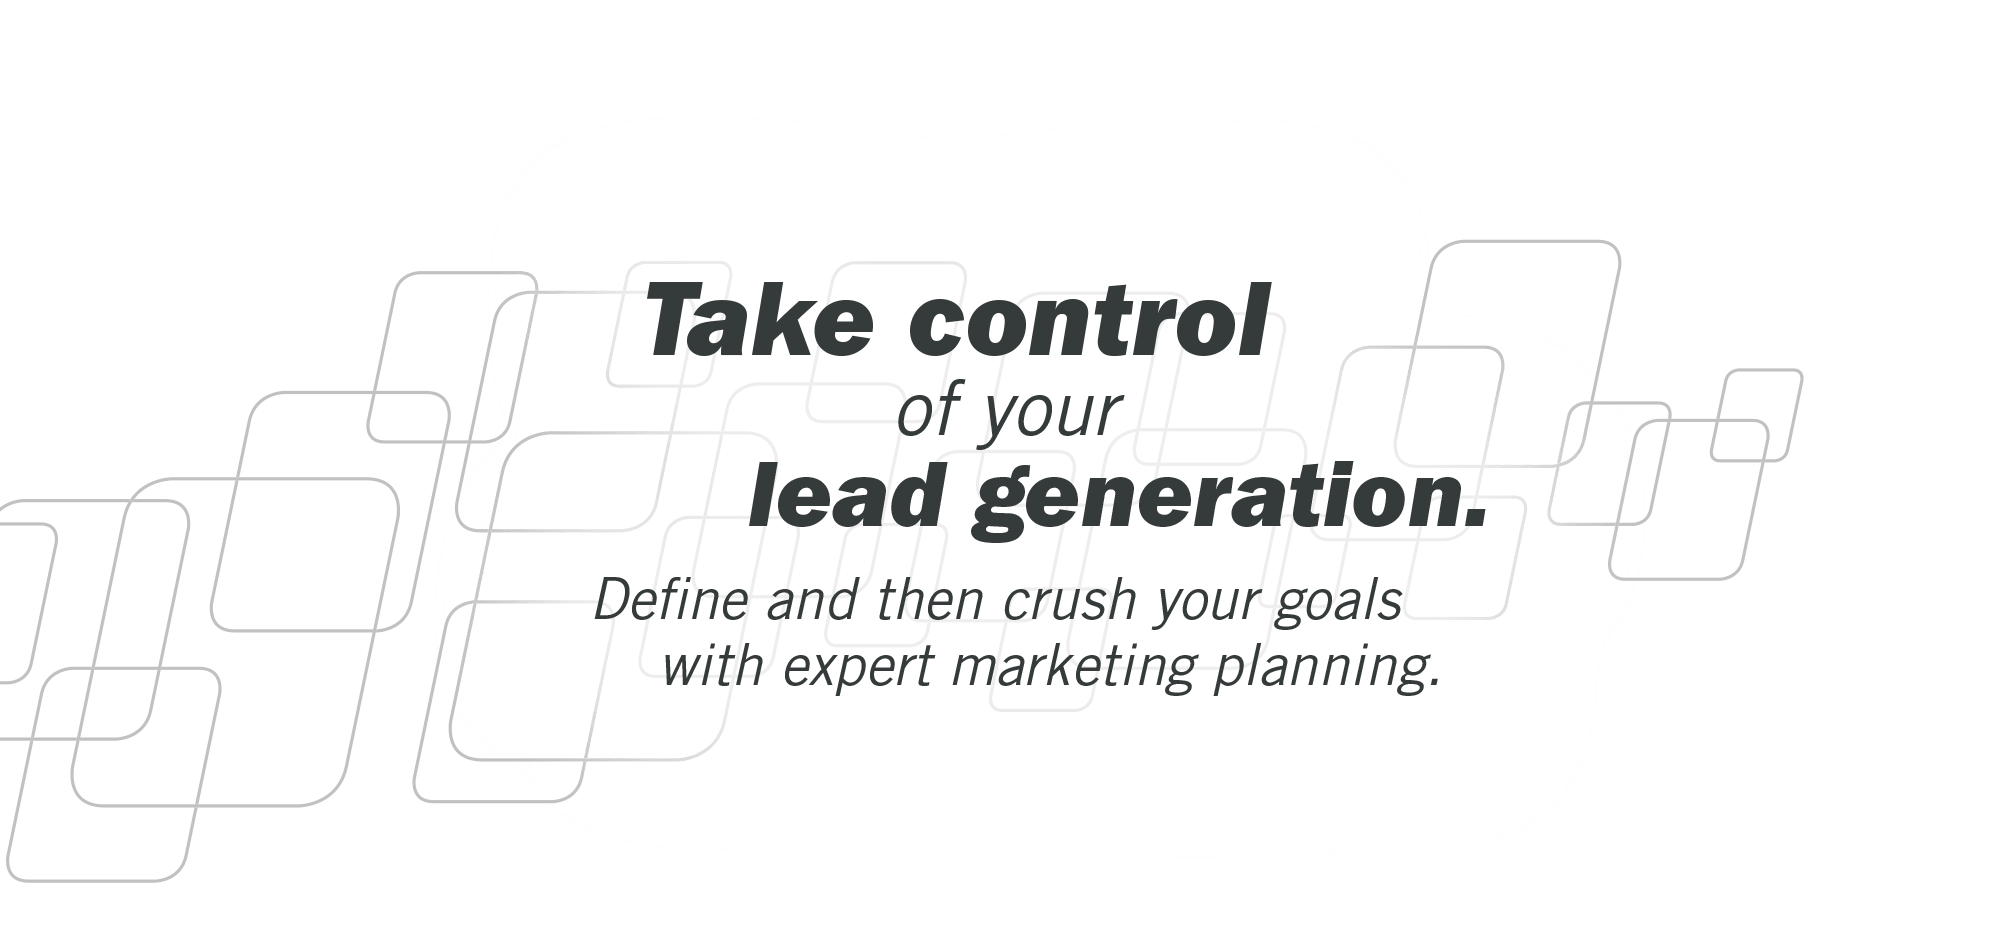 Maximize your website's lead generation with full-service online marketing